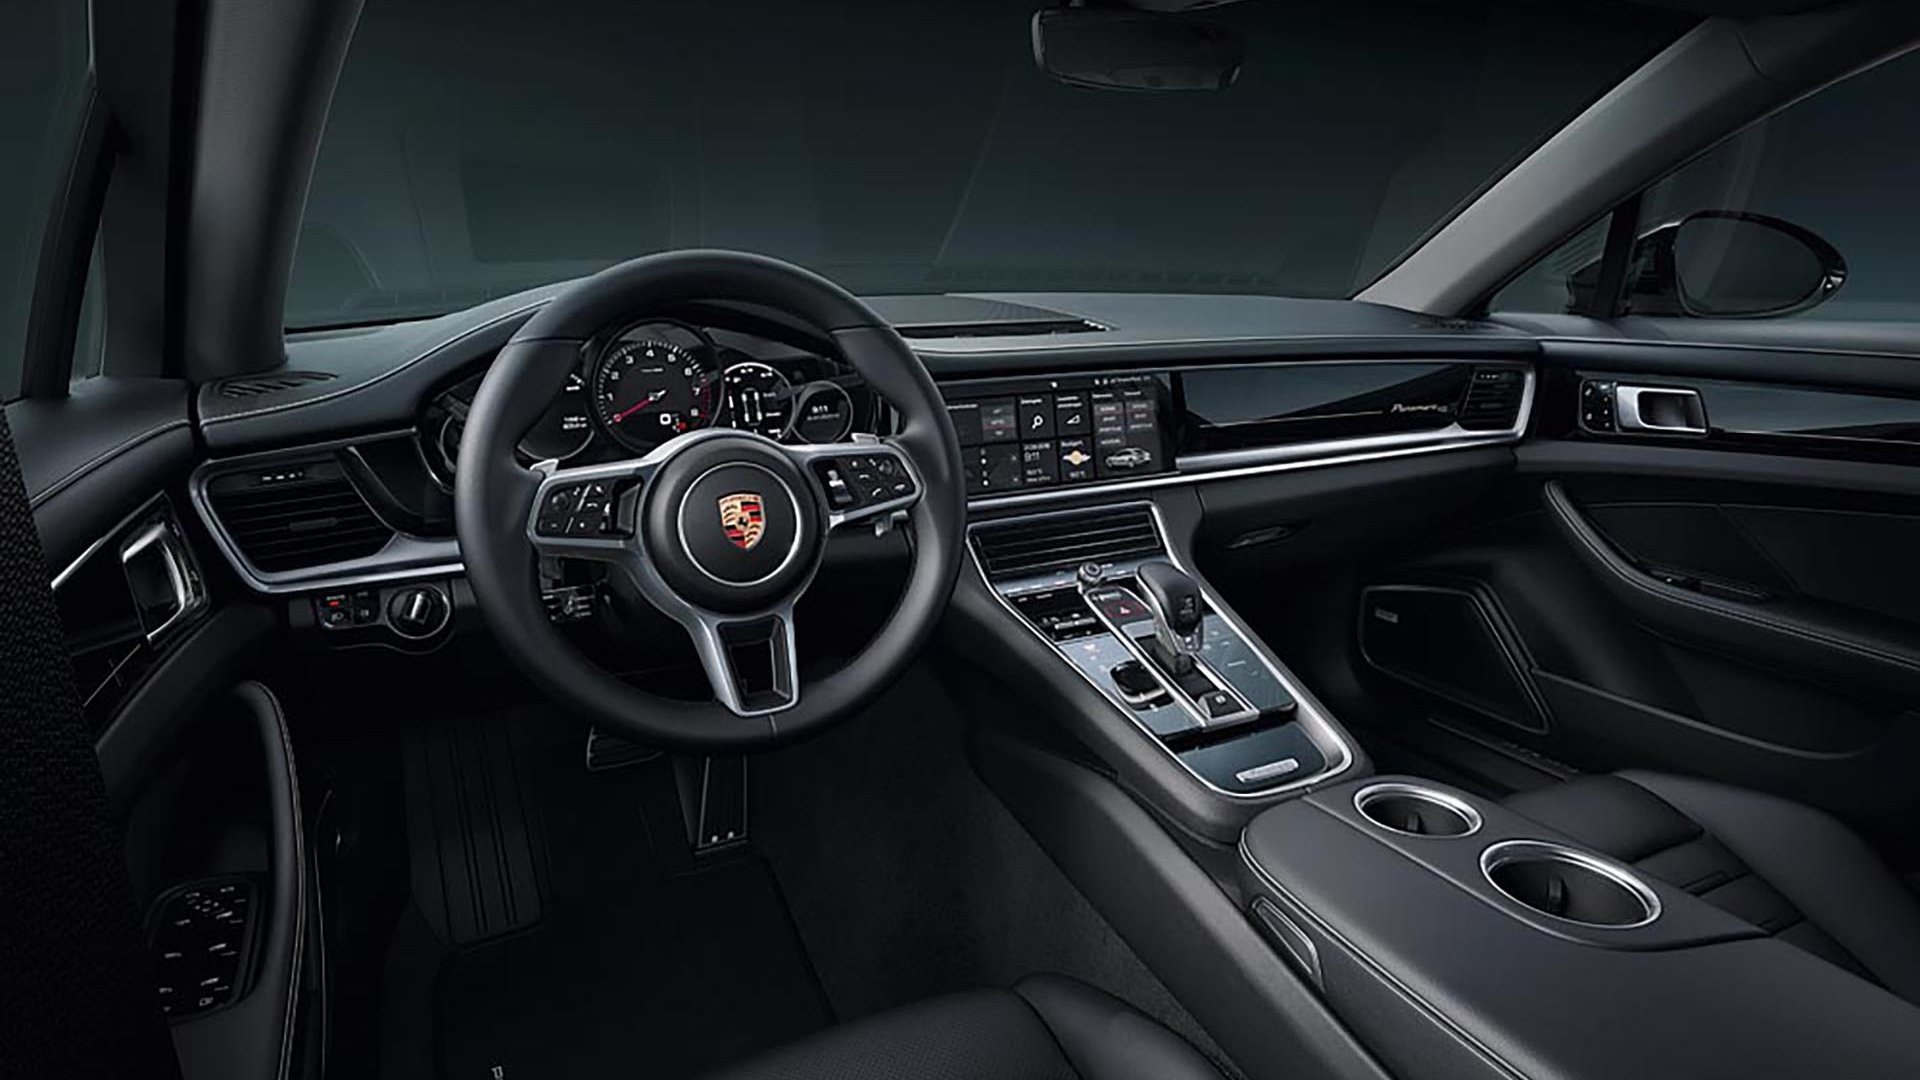 Porsche celebrates Panamera's 10-year anniversary with special edition model